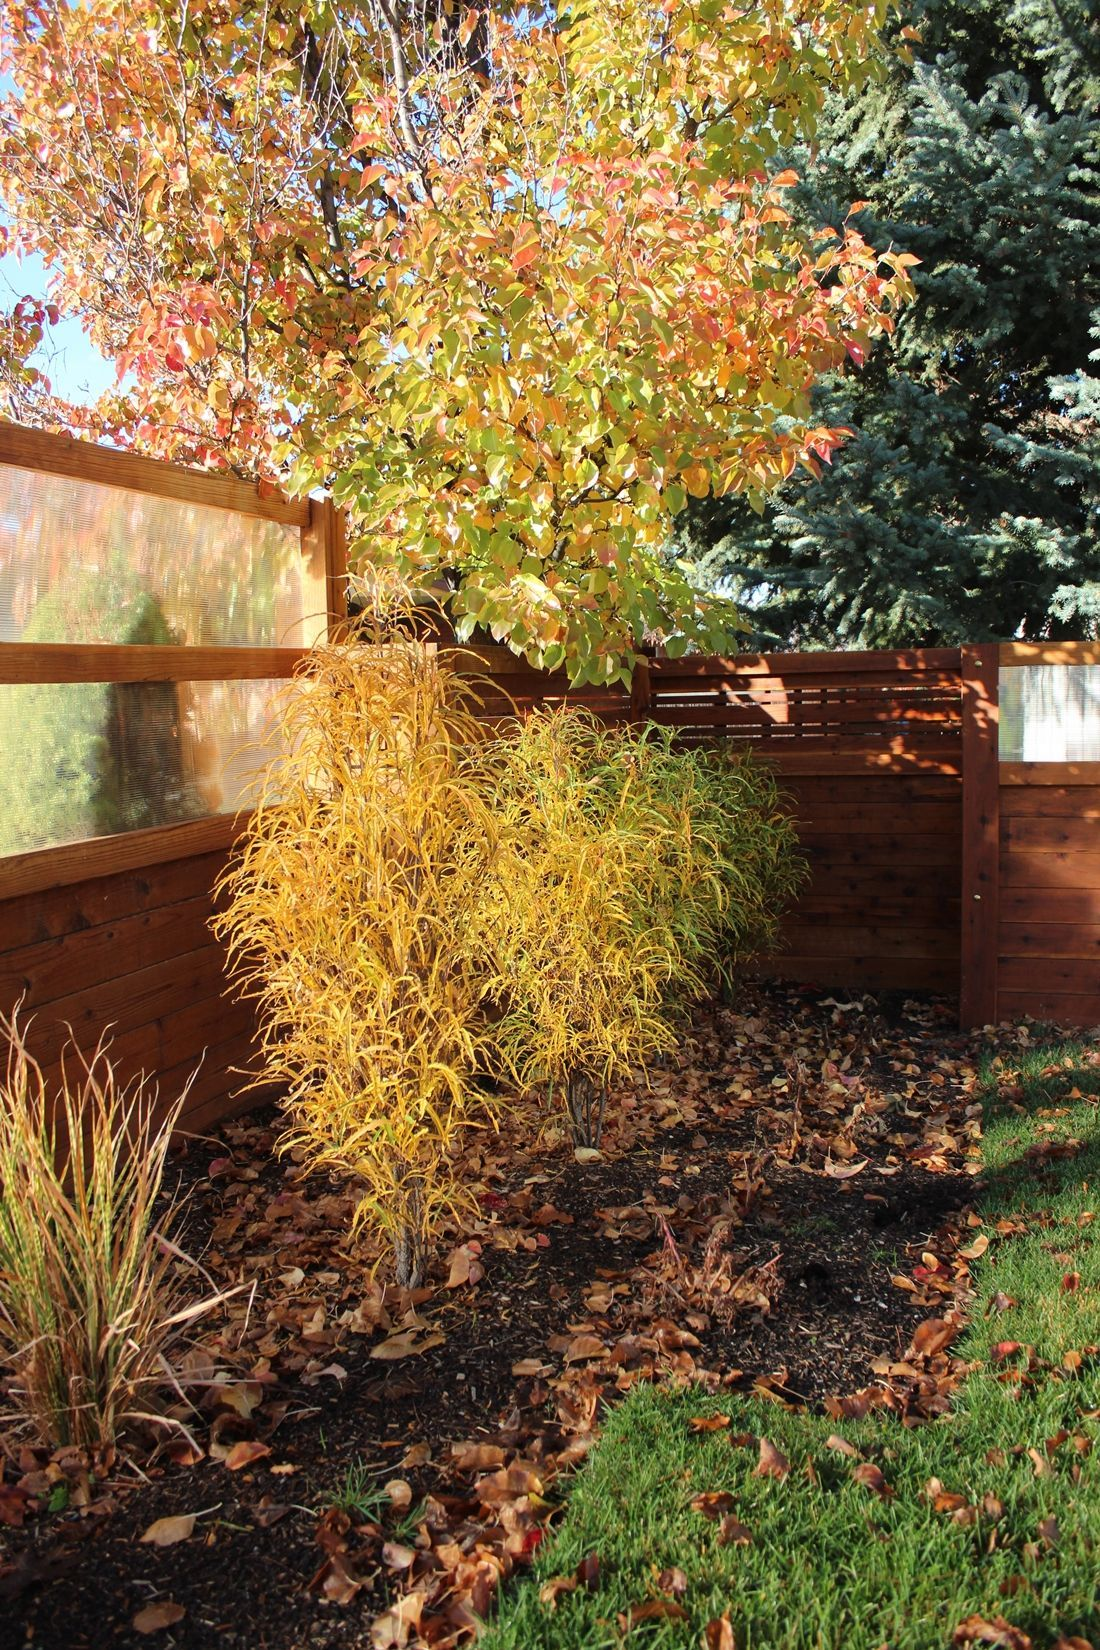 Curb Appeal - remove the fallen leaves